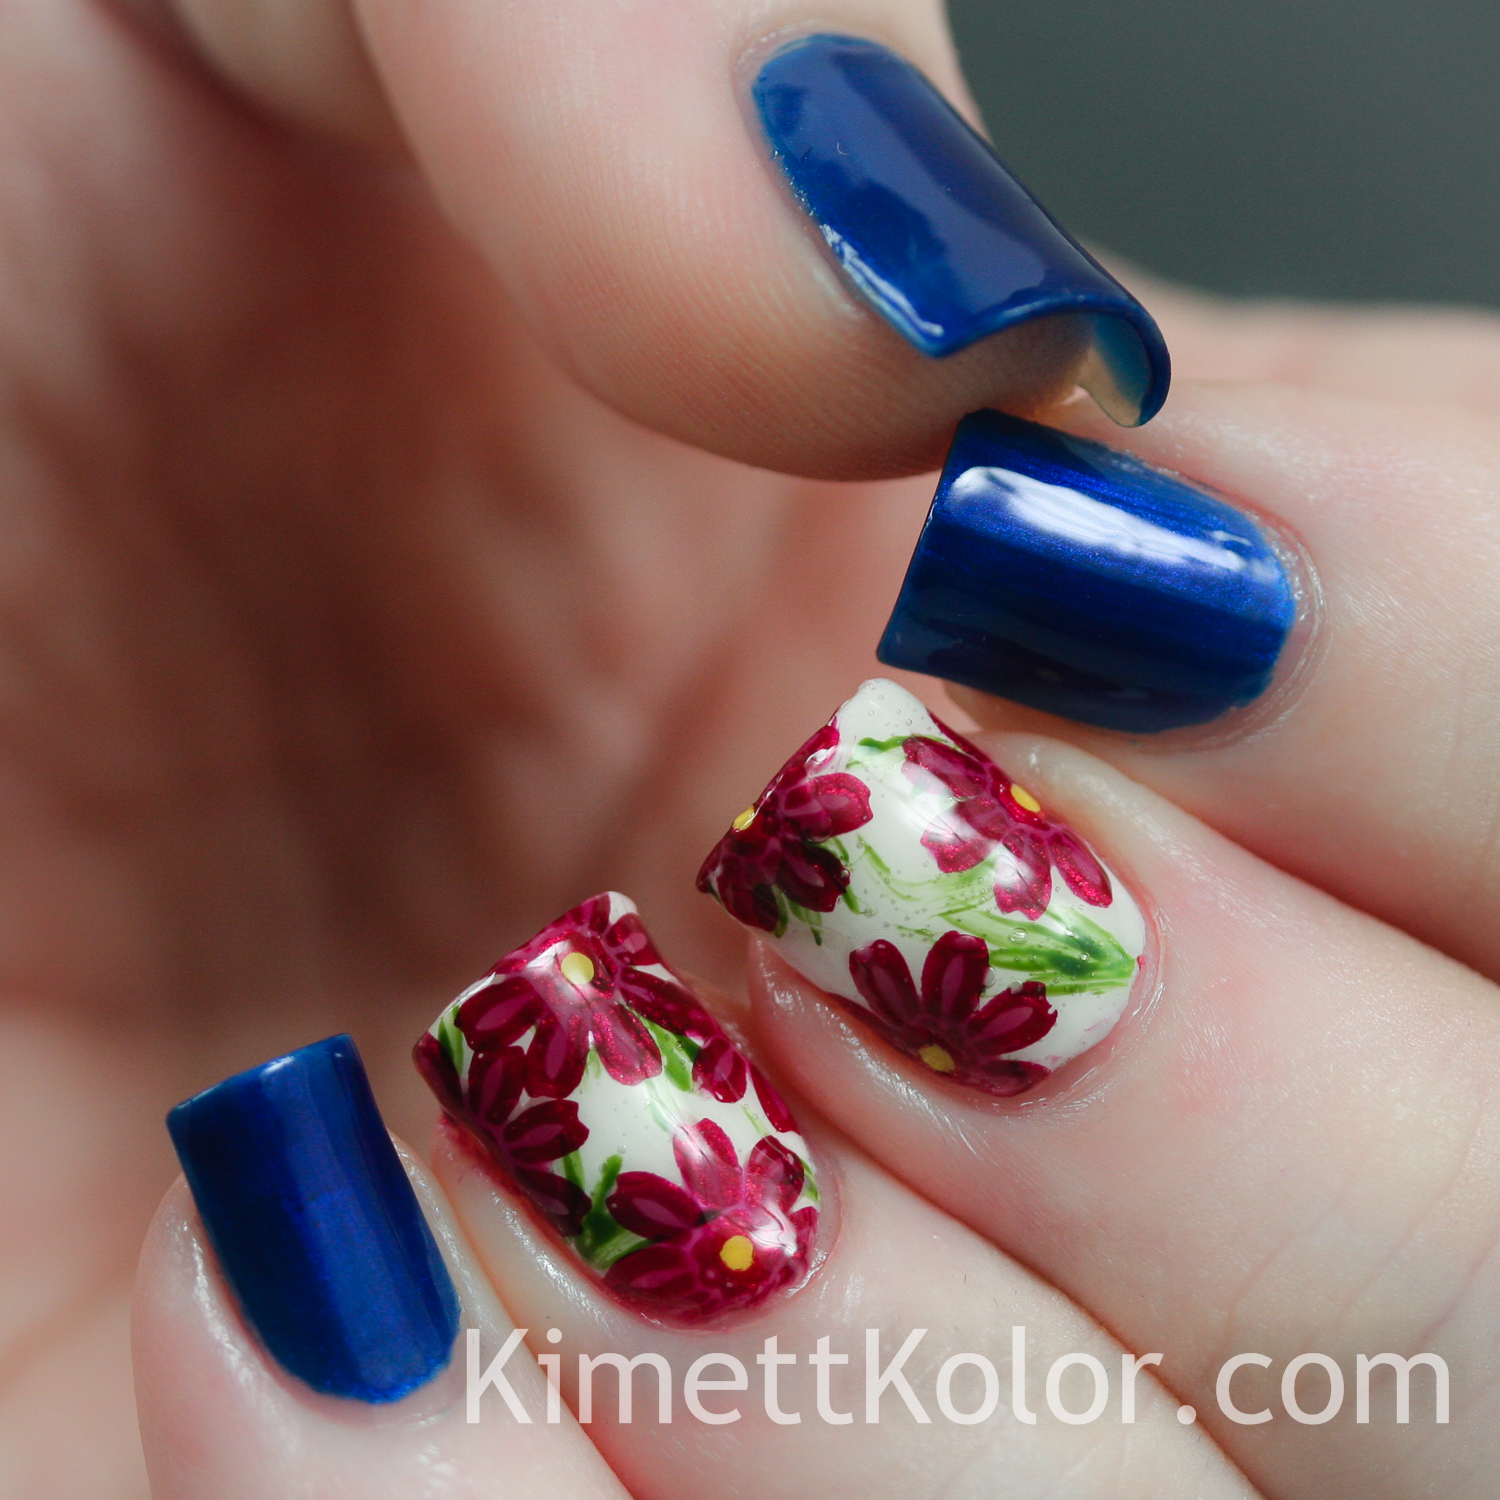 Theme of the Month: September Sapphire and Asters | Kimett Kolor